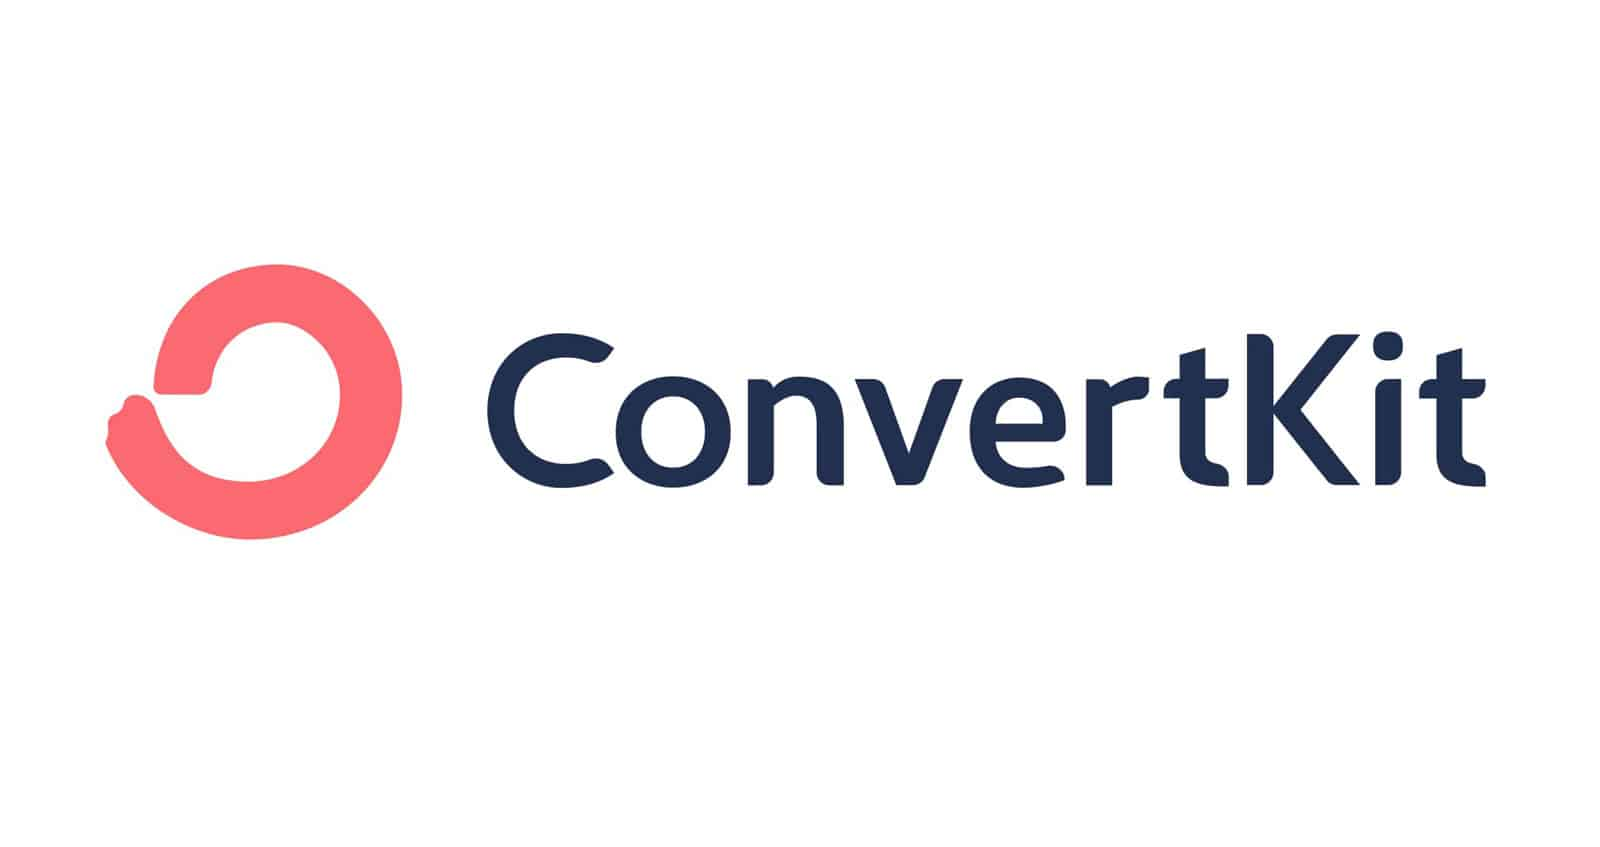 Where do I find my ConvertKit API Key?